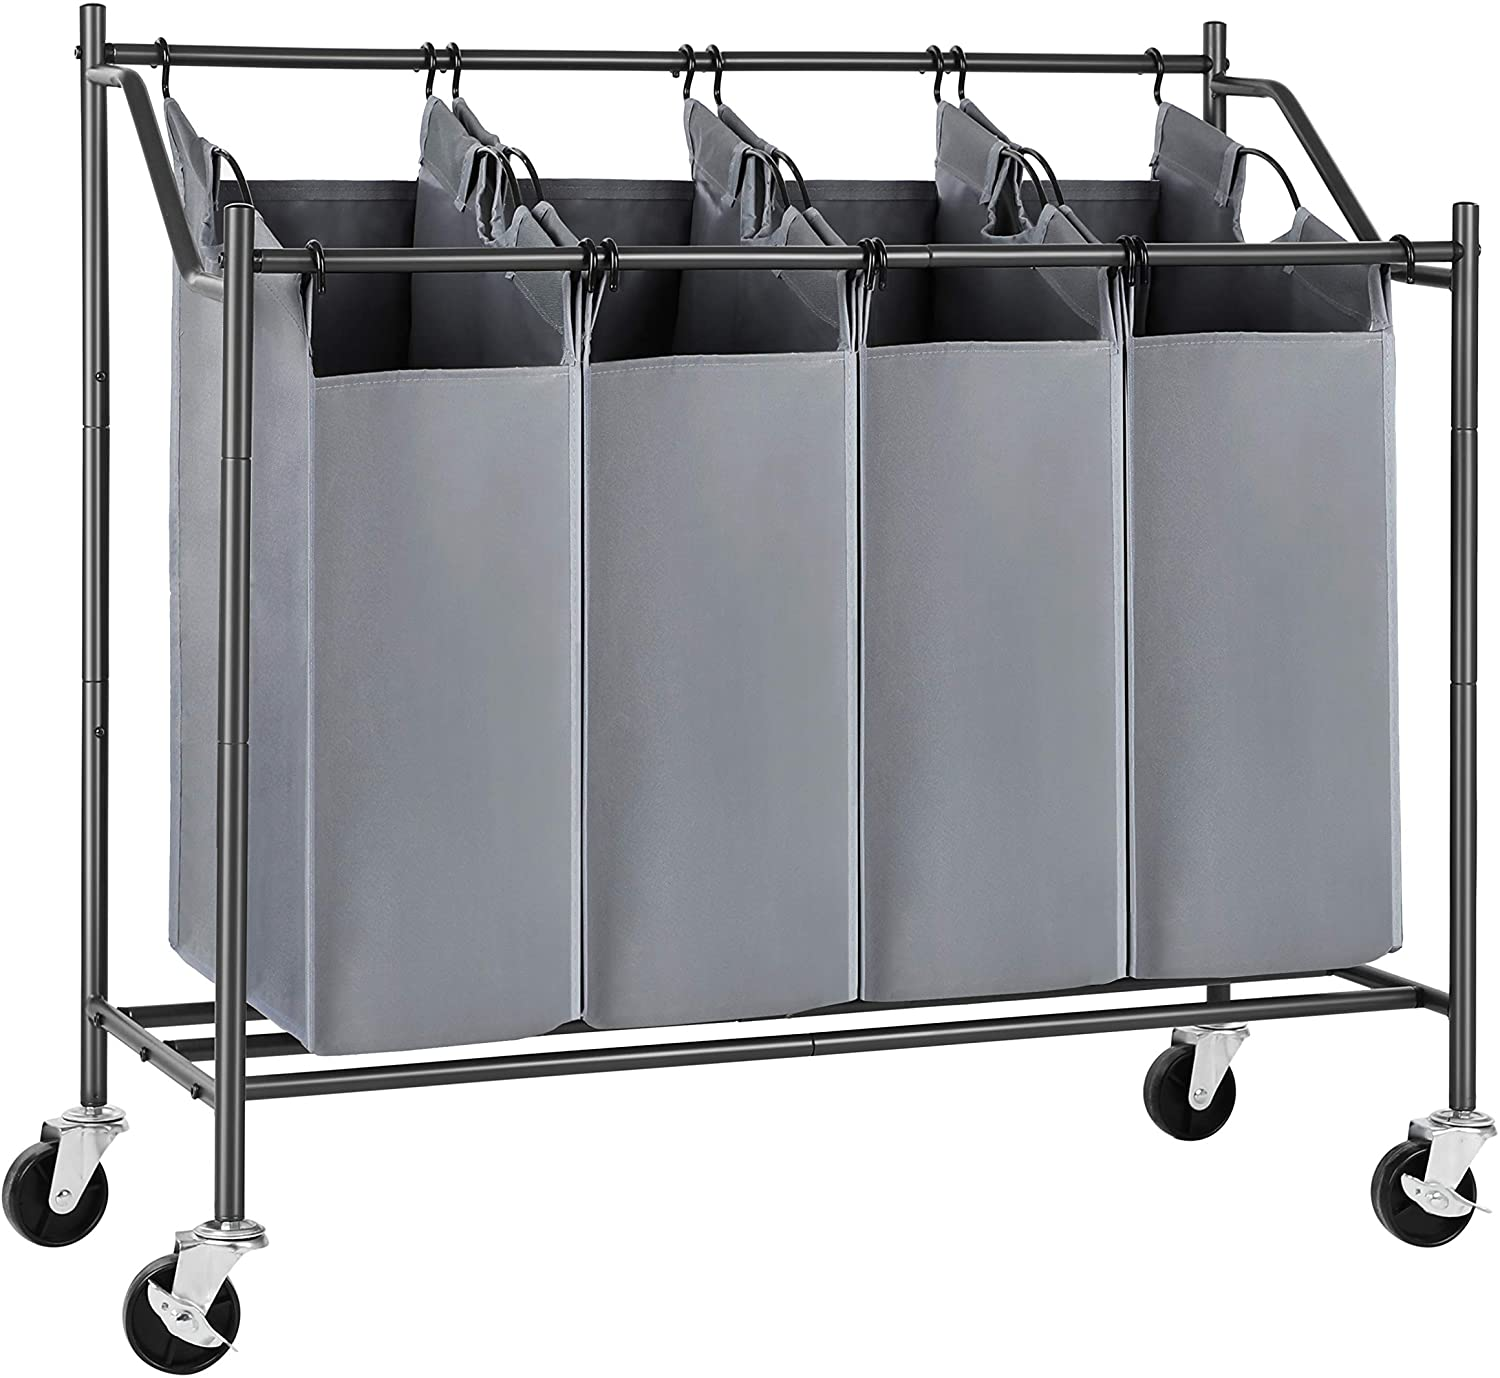 Enjoy fast, free nationwide shipping!  Family owned and operated, HawkinsWoodshop.com is your one stop shop for affordable furniture.  Shop HawkinsWoodshop.com for solid wood & metal modern, traditional, contemporary, industrial, custom, rustic, and farmhouse furniture including our Removable Bag Laundry Cart Basket Hamper.